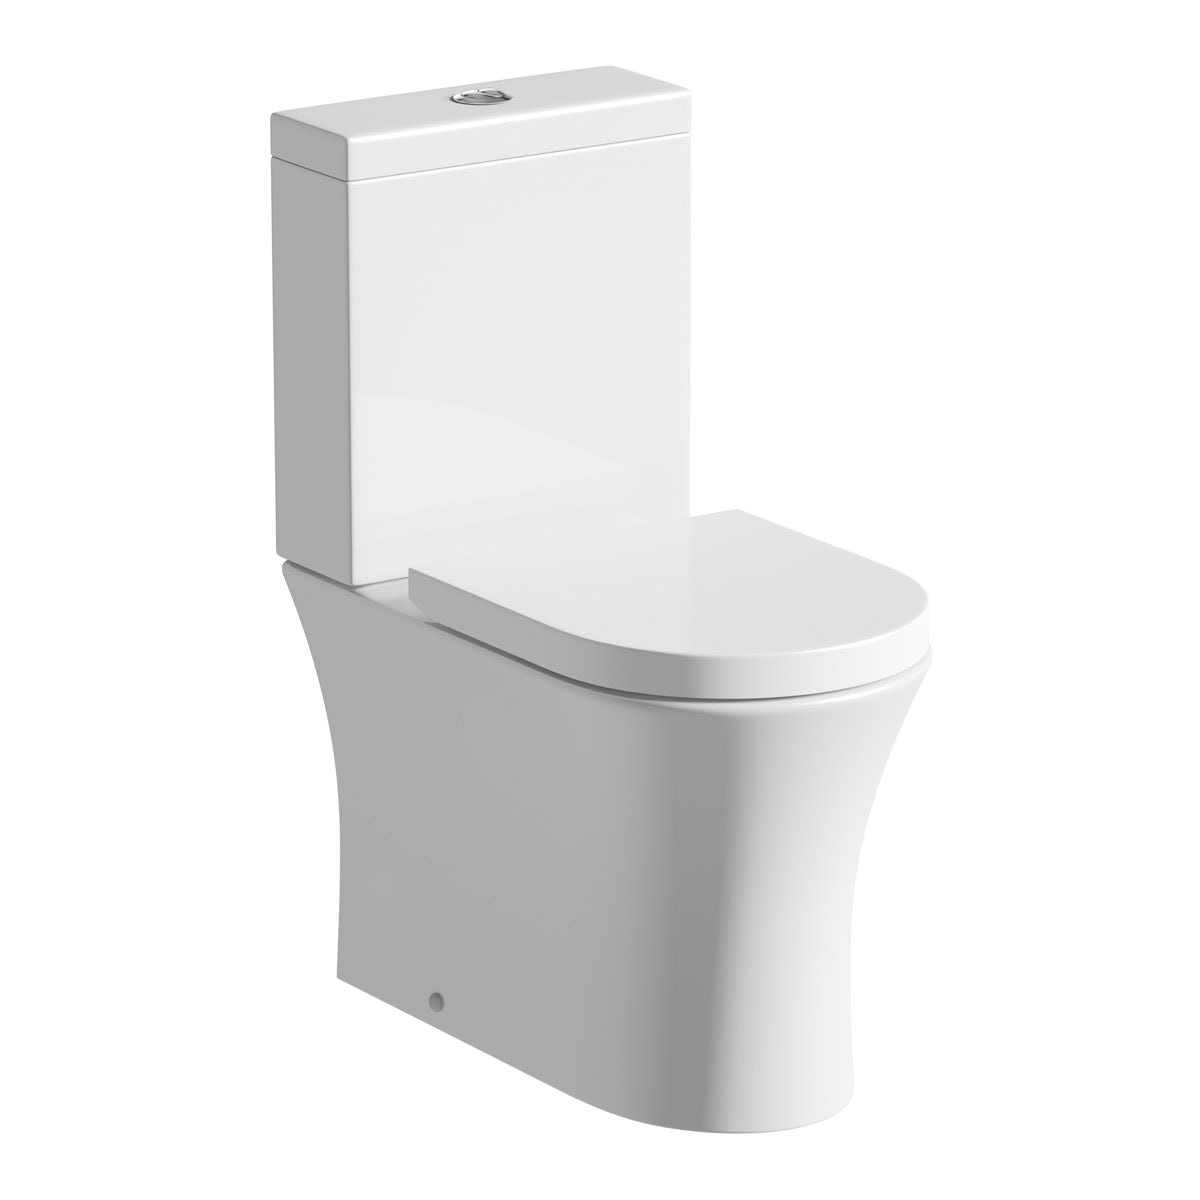 Mode Hardy rimless close coupled toilet inc soft close seat